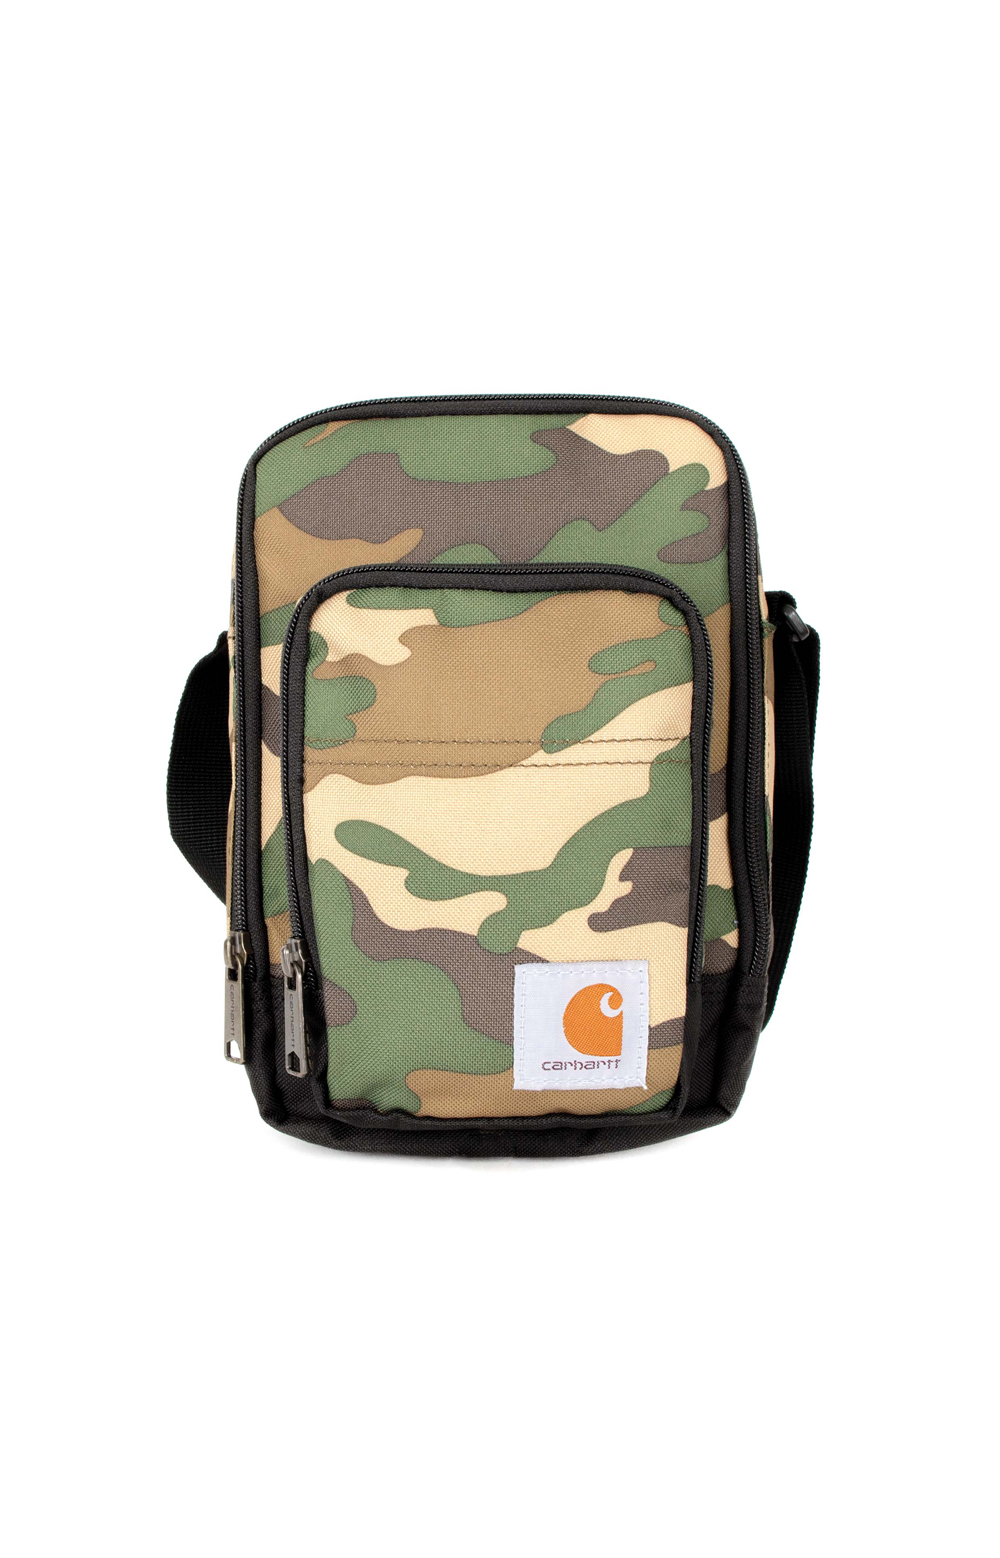 Legacy Cross Body Gear Organizer - Camo